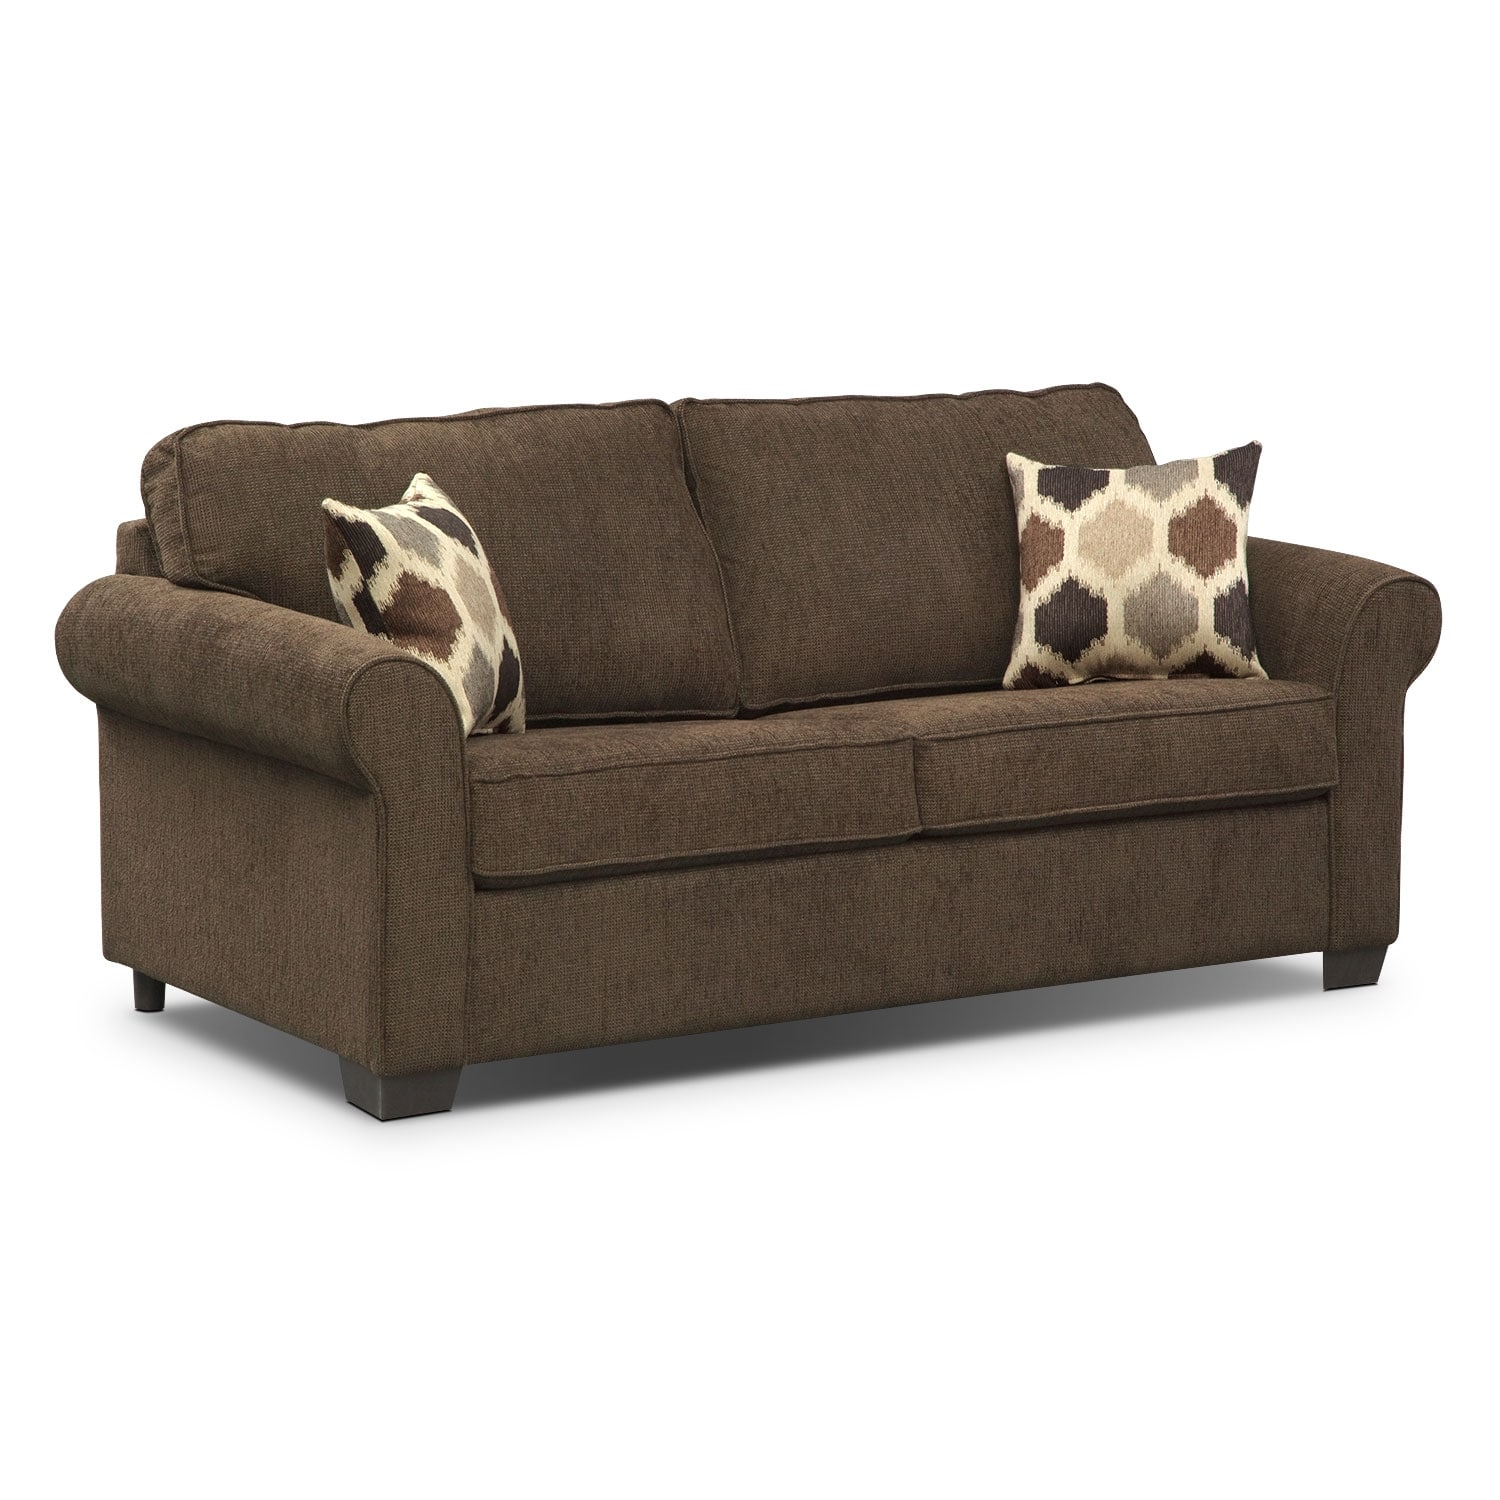 Fletcher Ii Full Innerspring Sleeper Sofa Value City Furniture